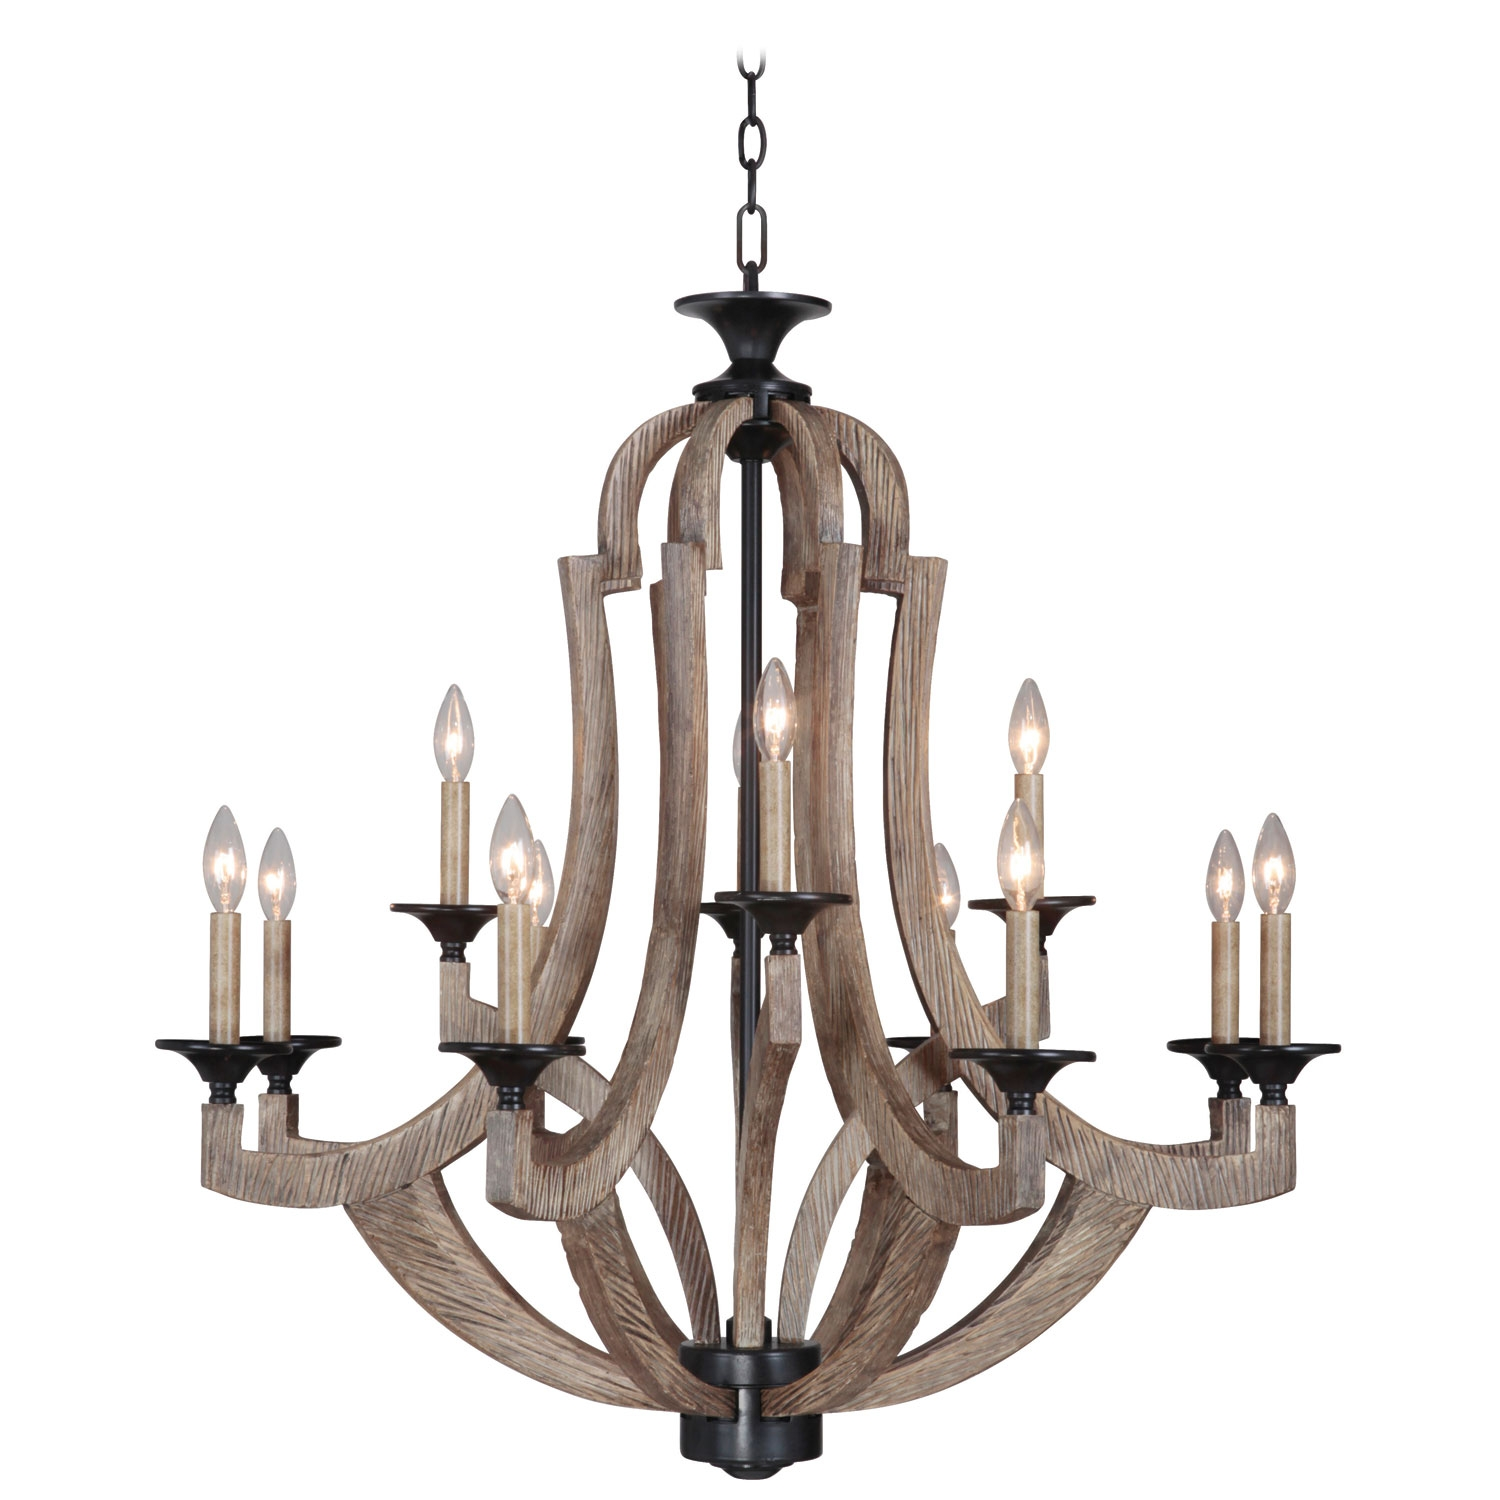 Chandeliers Crystal Modern Iron Shab Chic Country French Regarding French Country Chandeliers (Photo 11 of 25)